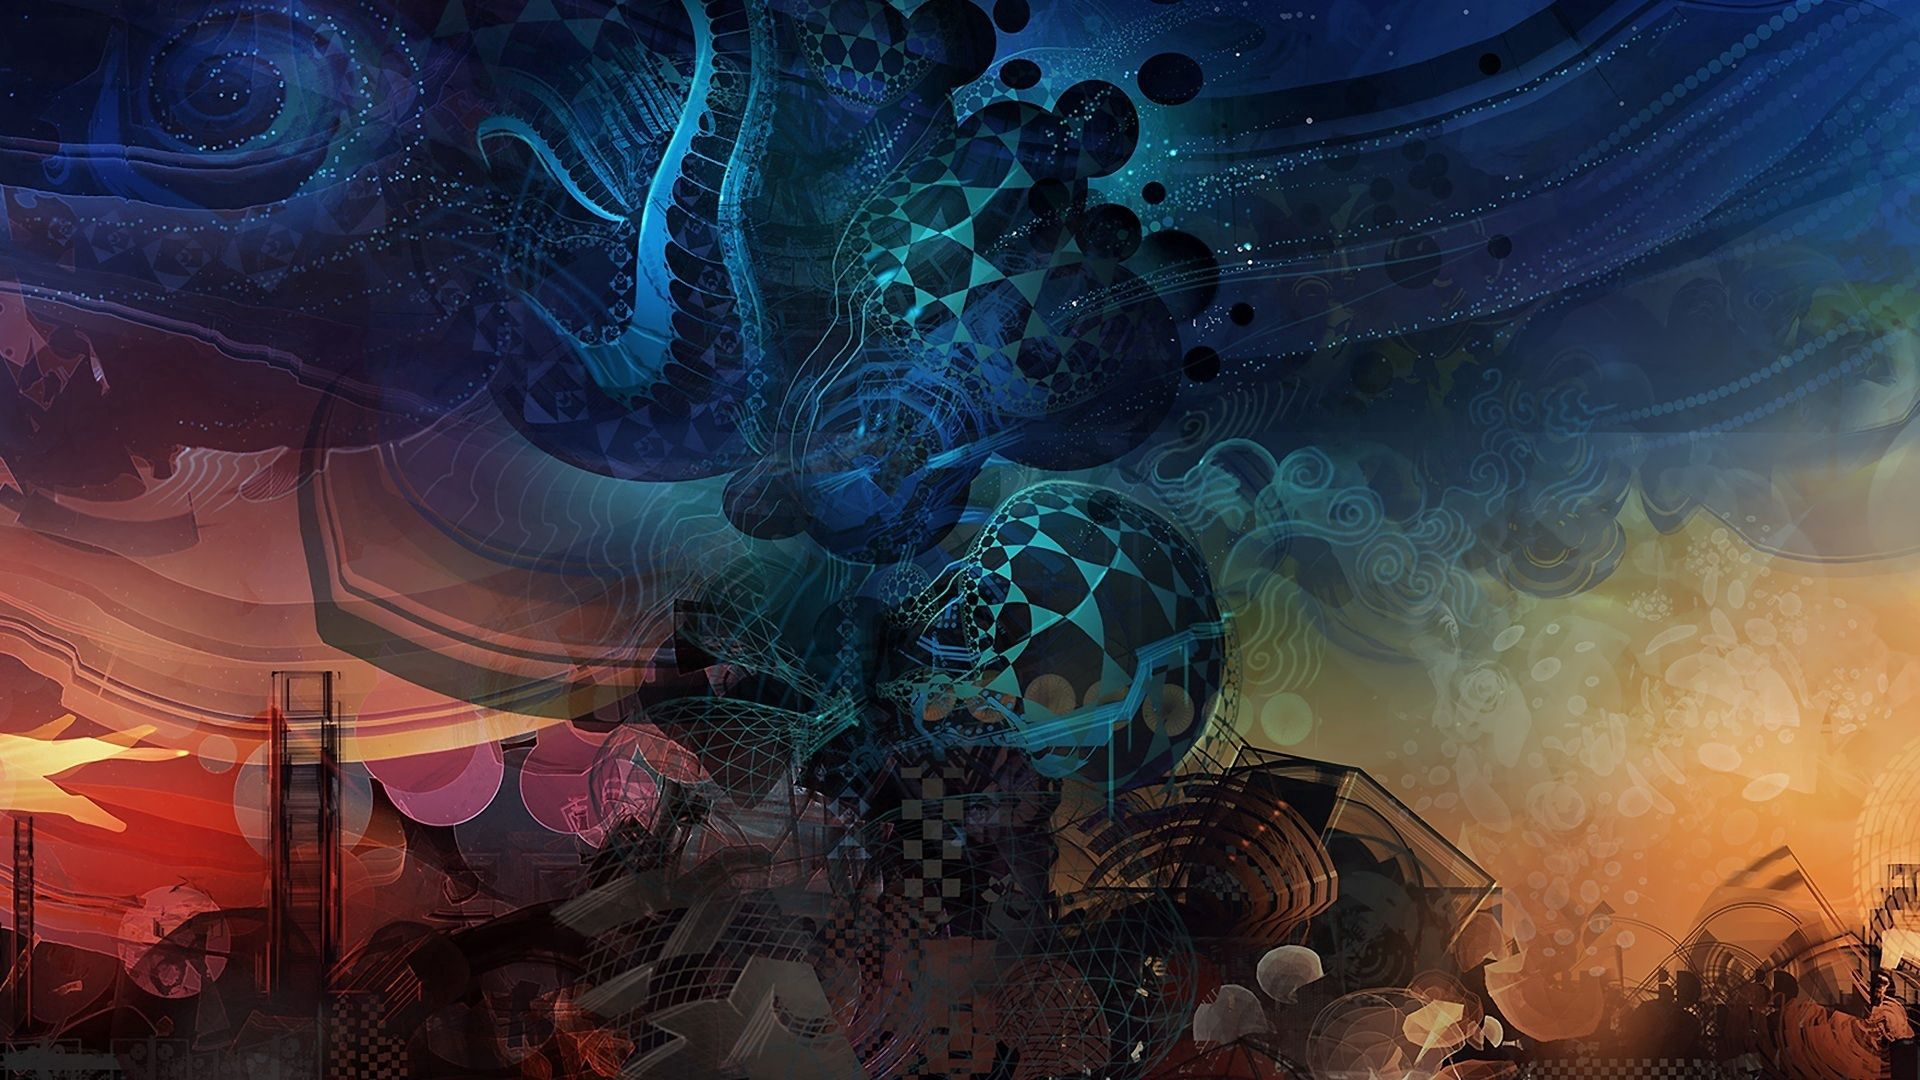 133335 download wallpaper Abstract, Fantasy, Shine, Light, Pattern, Imagination screensavers and pictures for free